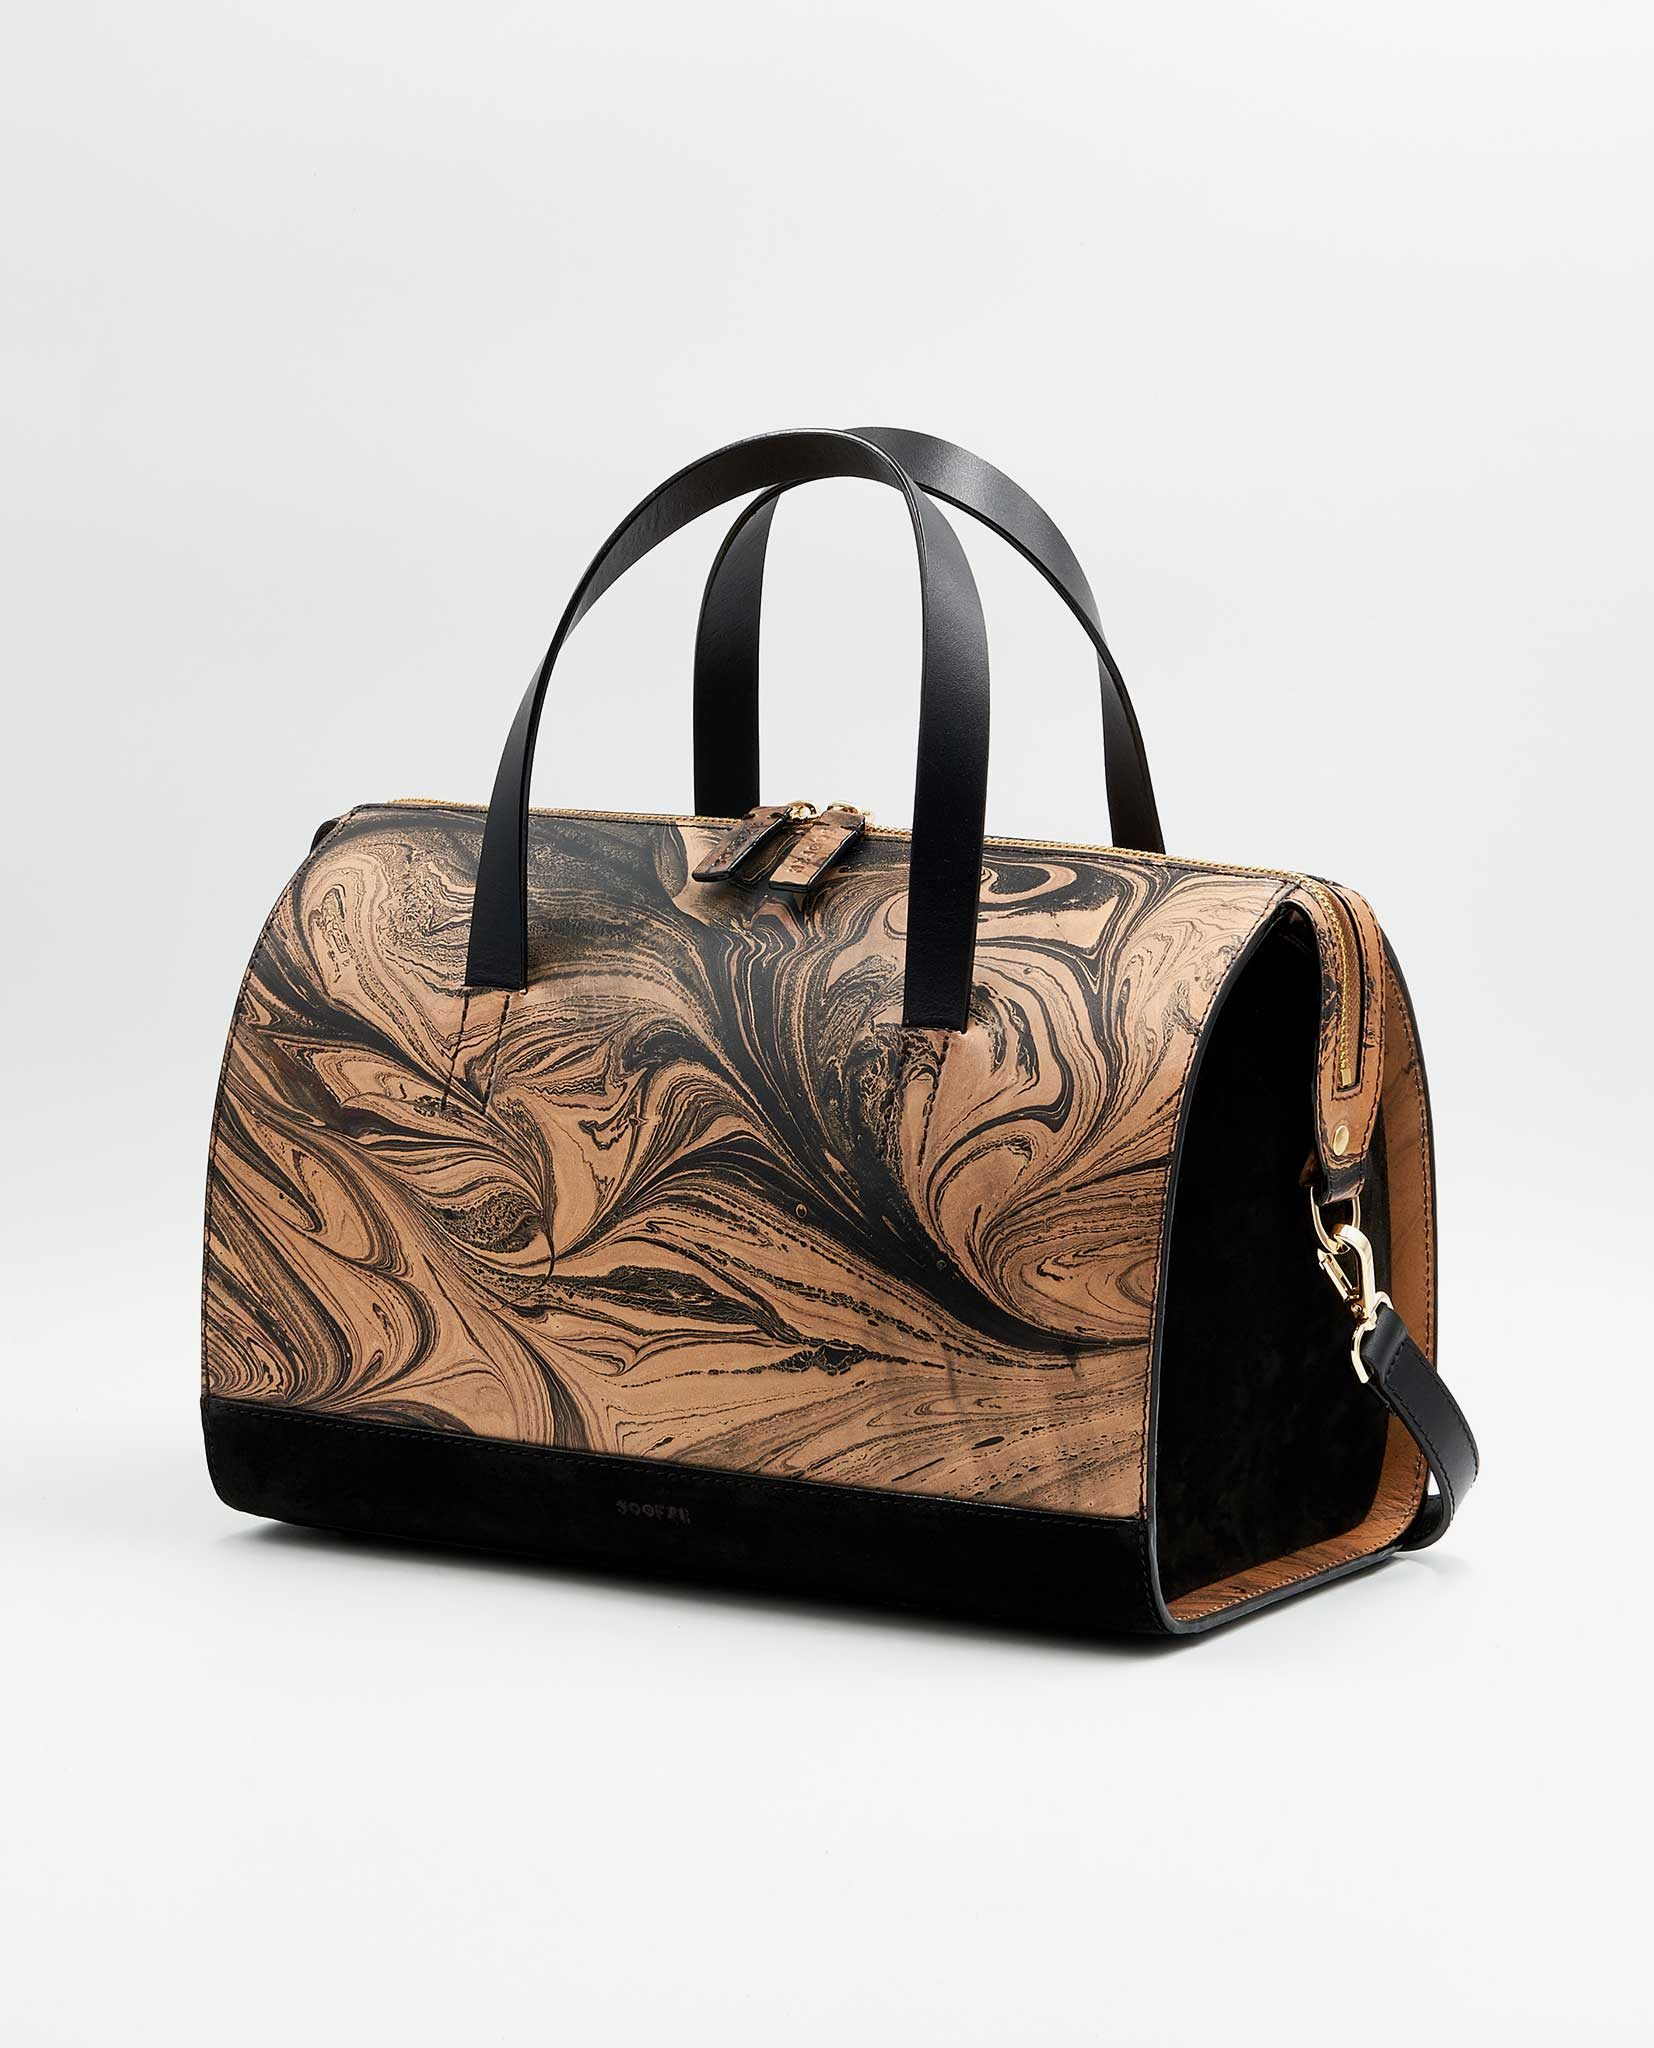 SOOFRE-Berlin-unique-Bowler-Bag-marble-black-black-SIDES